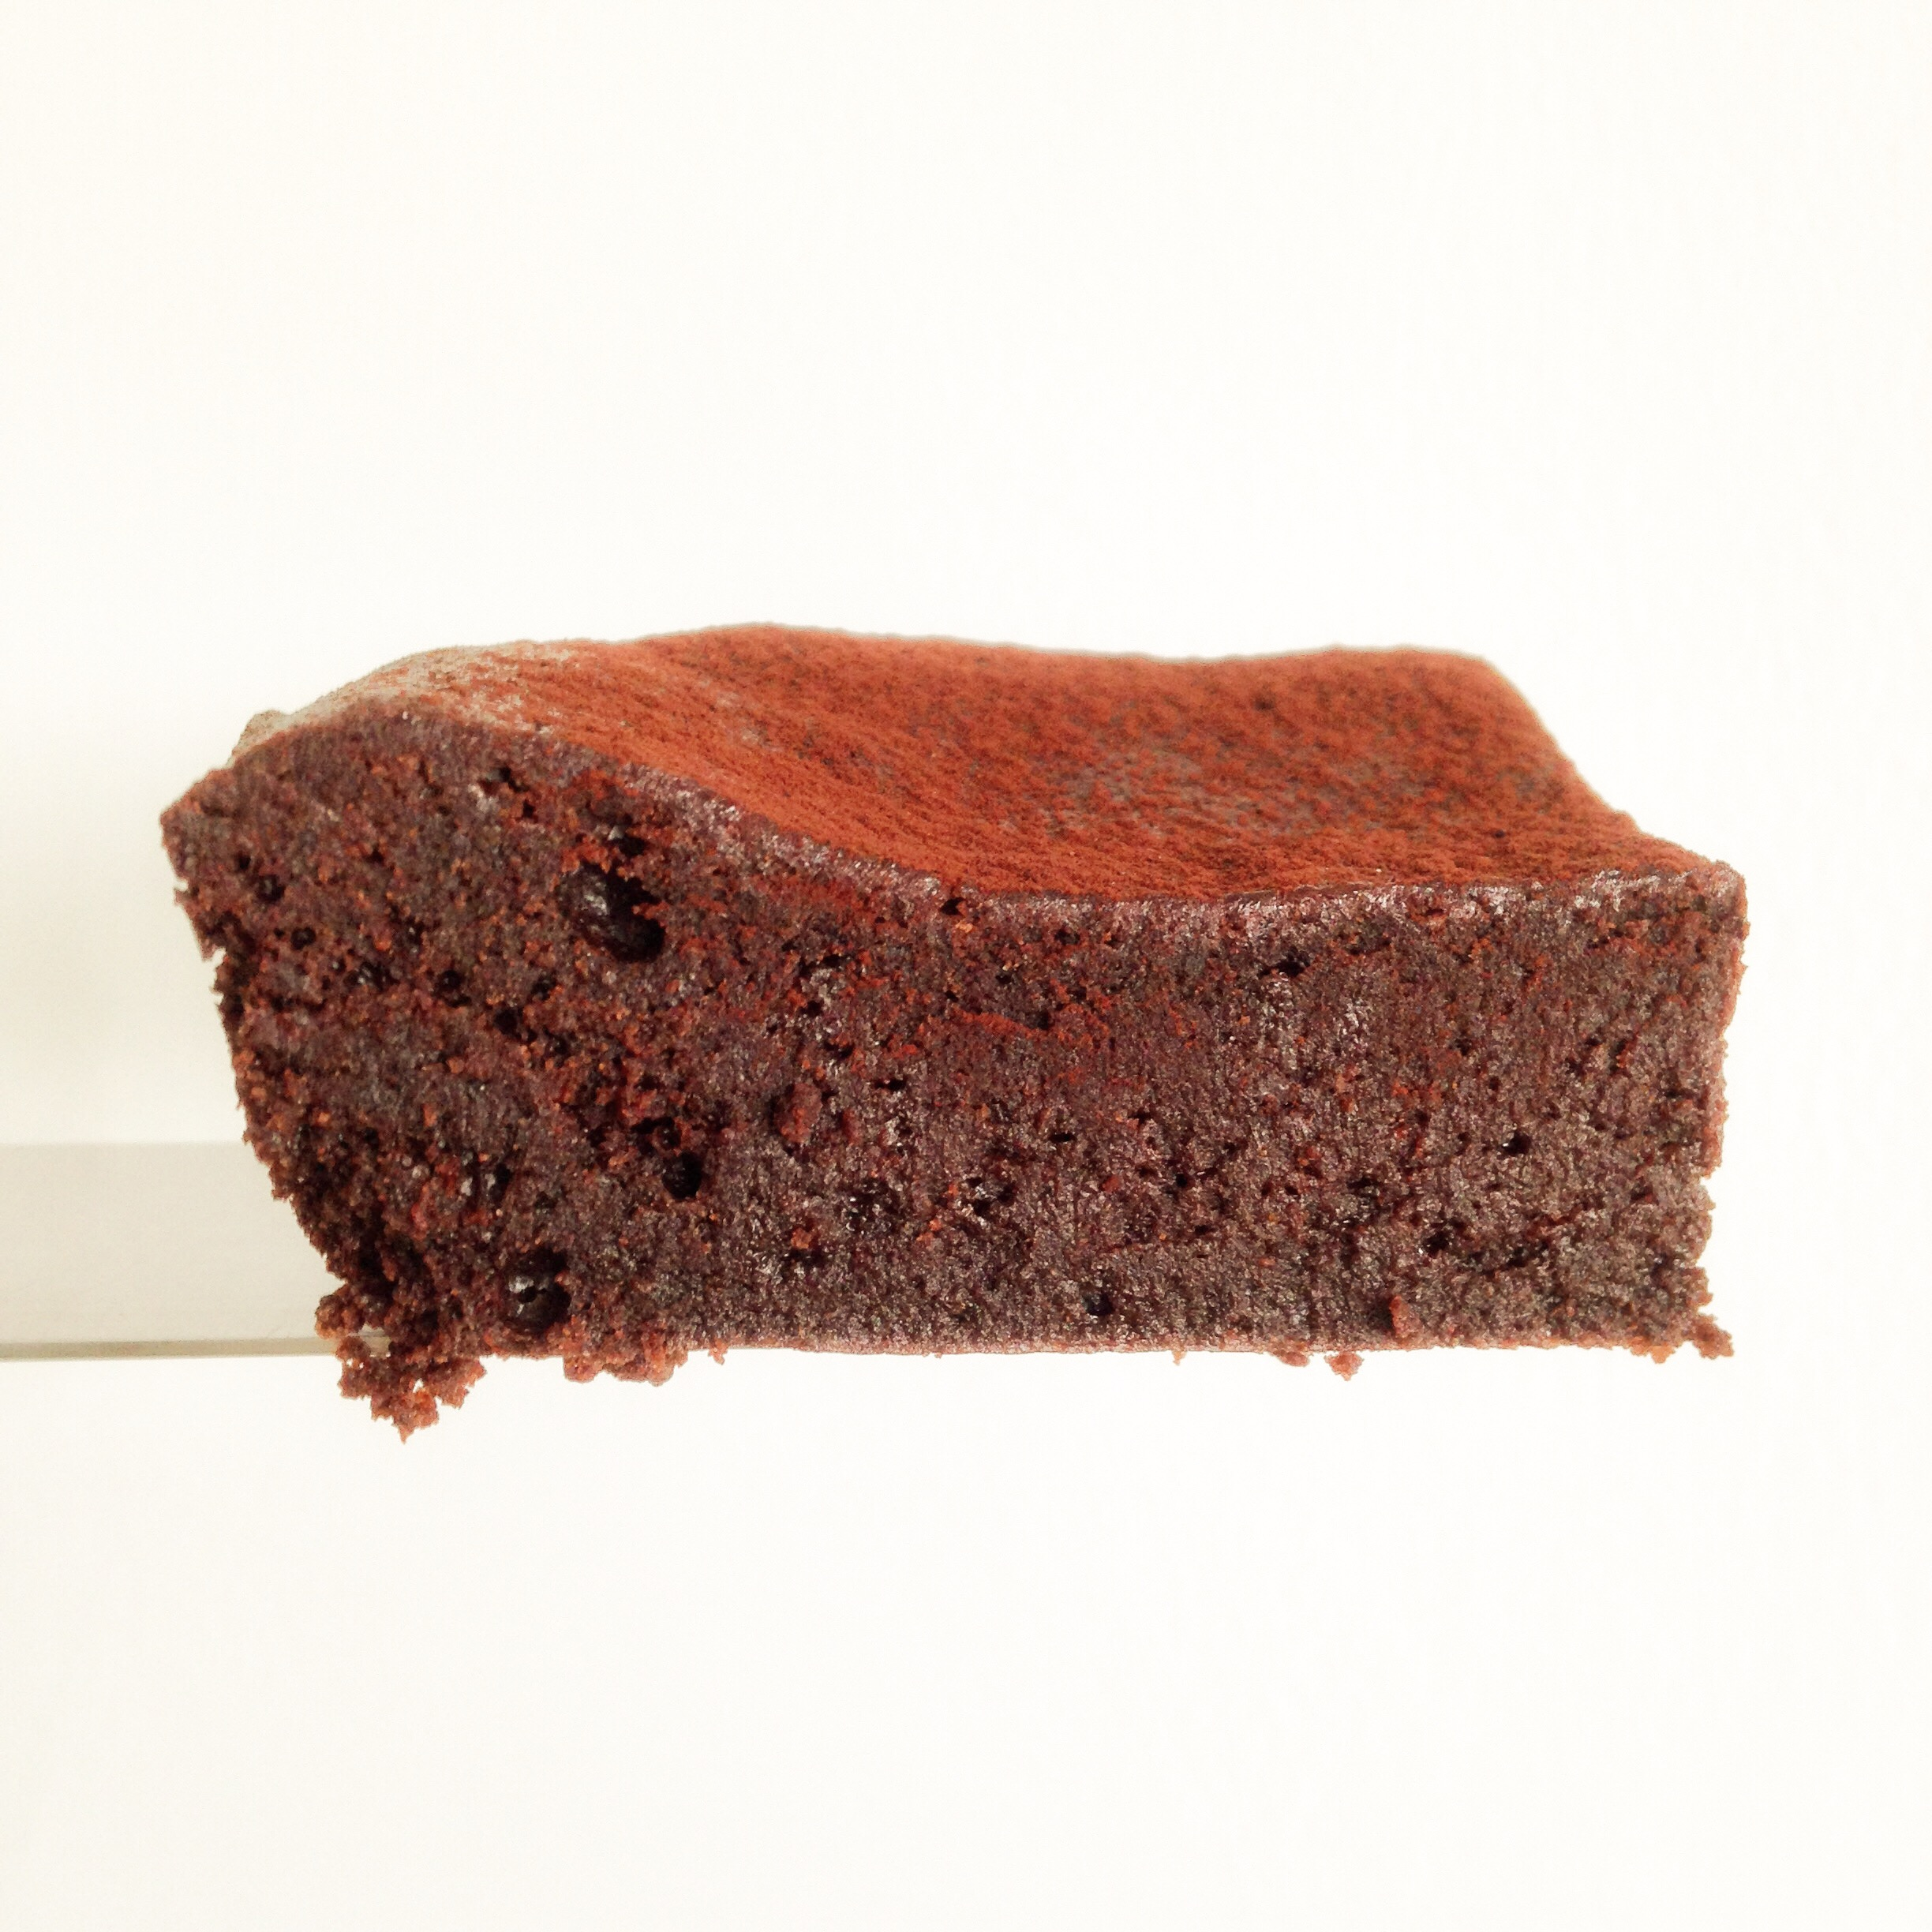 The Madagascan Brownie – serves 10